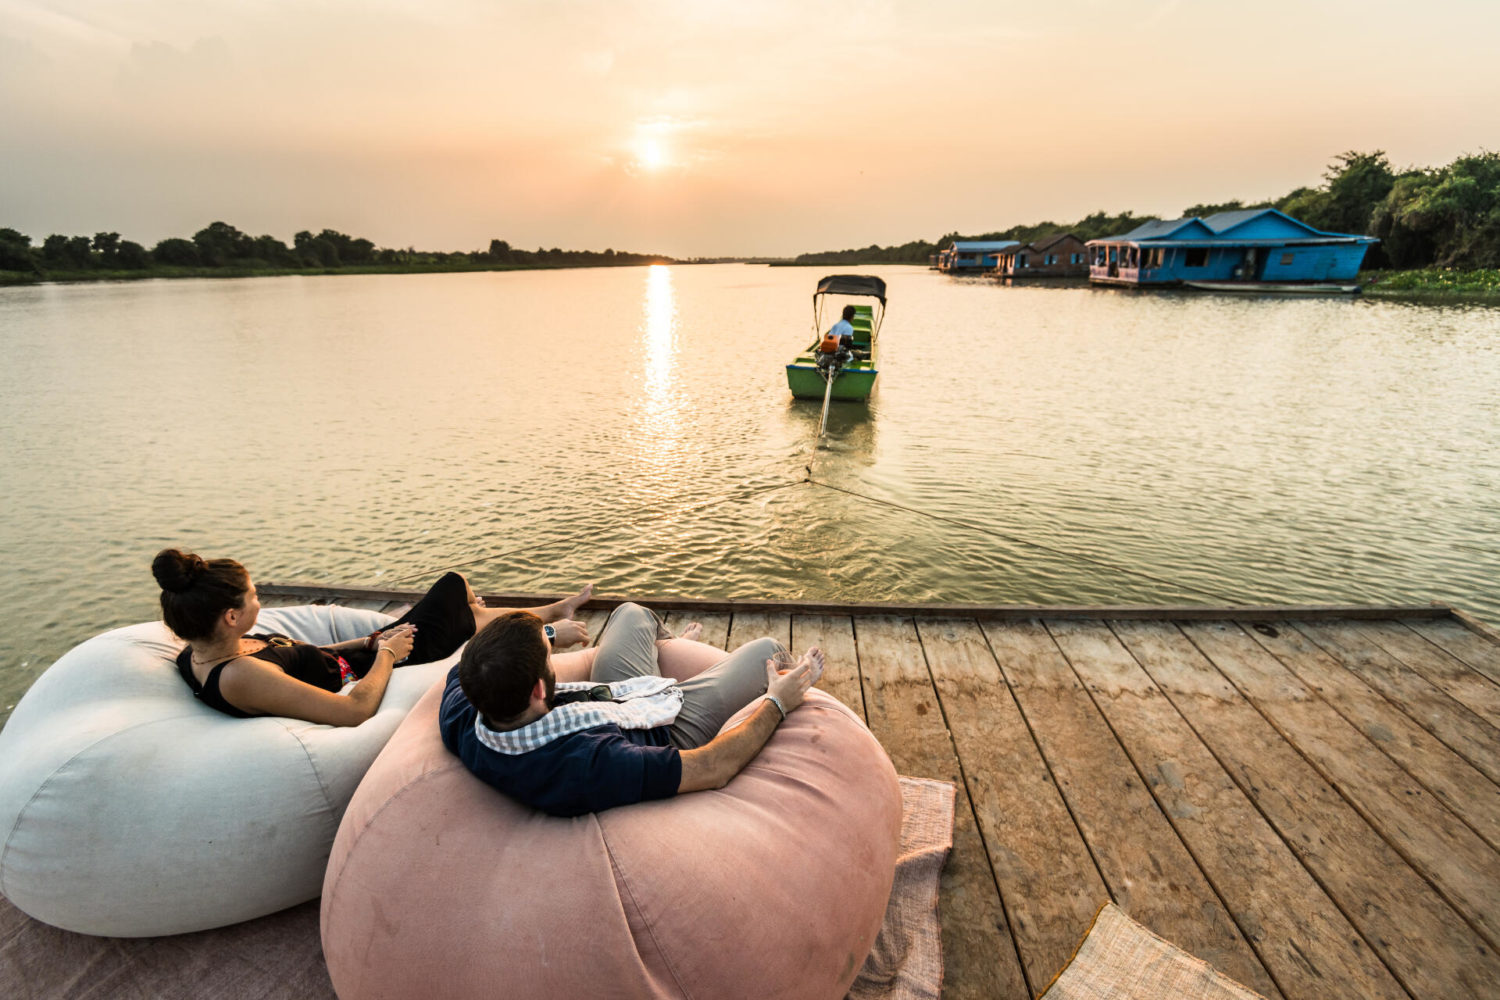 Escape from it all with this experience - Tonle Sap floating water houses stay!